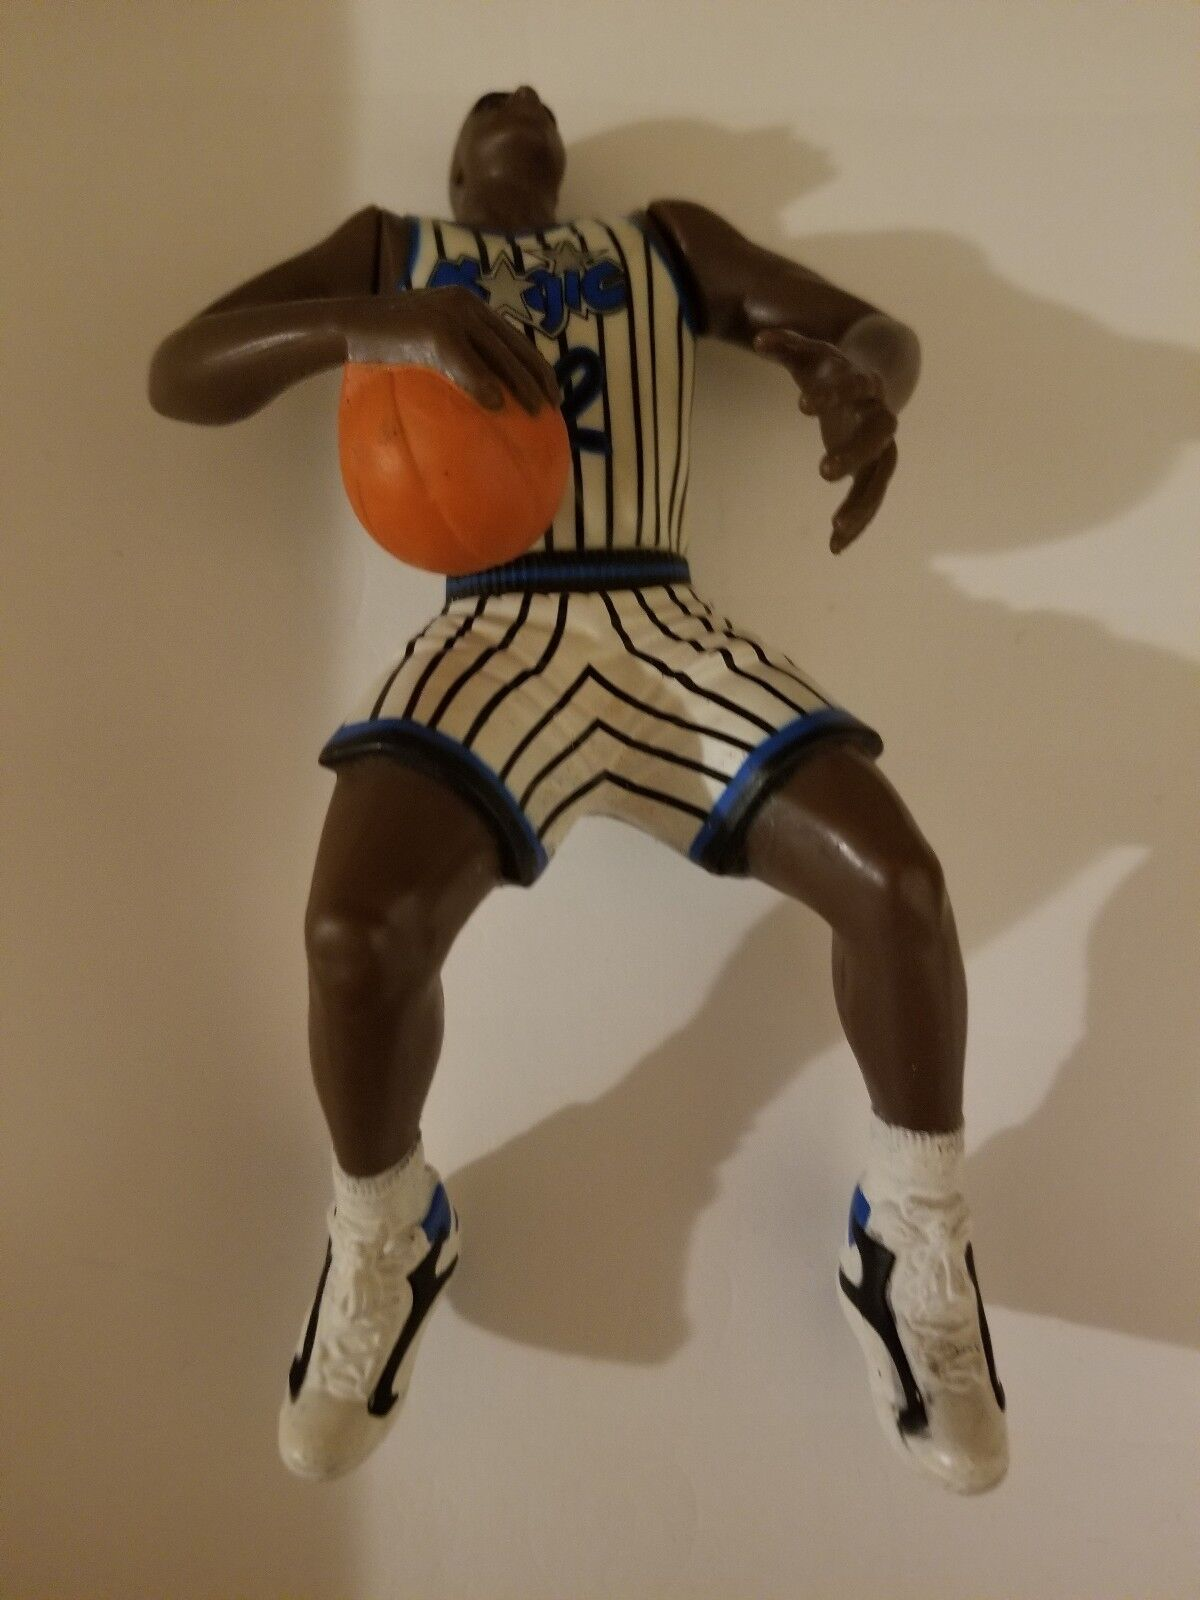 Shaquille o'neal action figure ..rookie shaq  32 Orlando magic..in shape shaq..